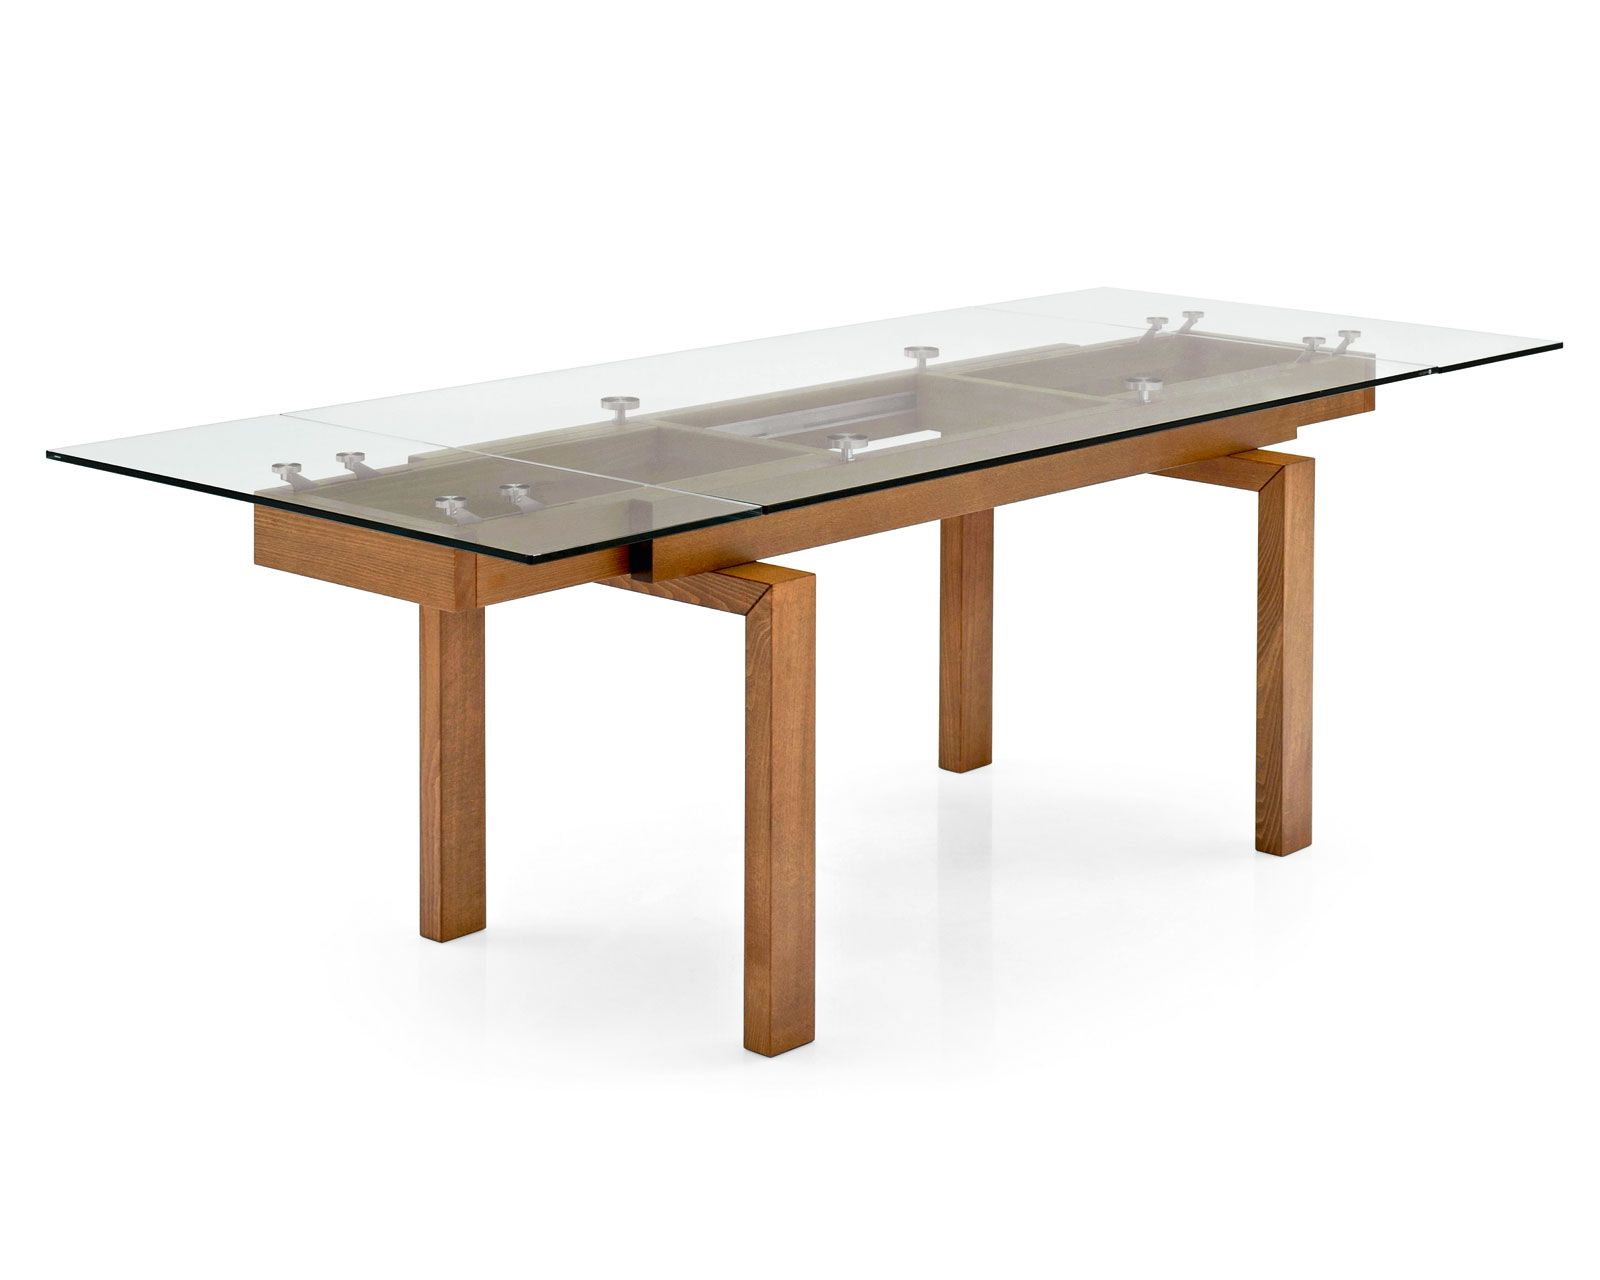 The Calligaris Hyper extendable glass table at